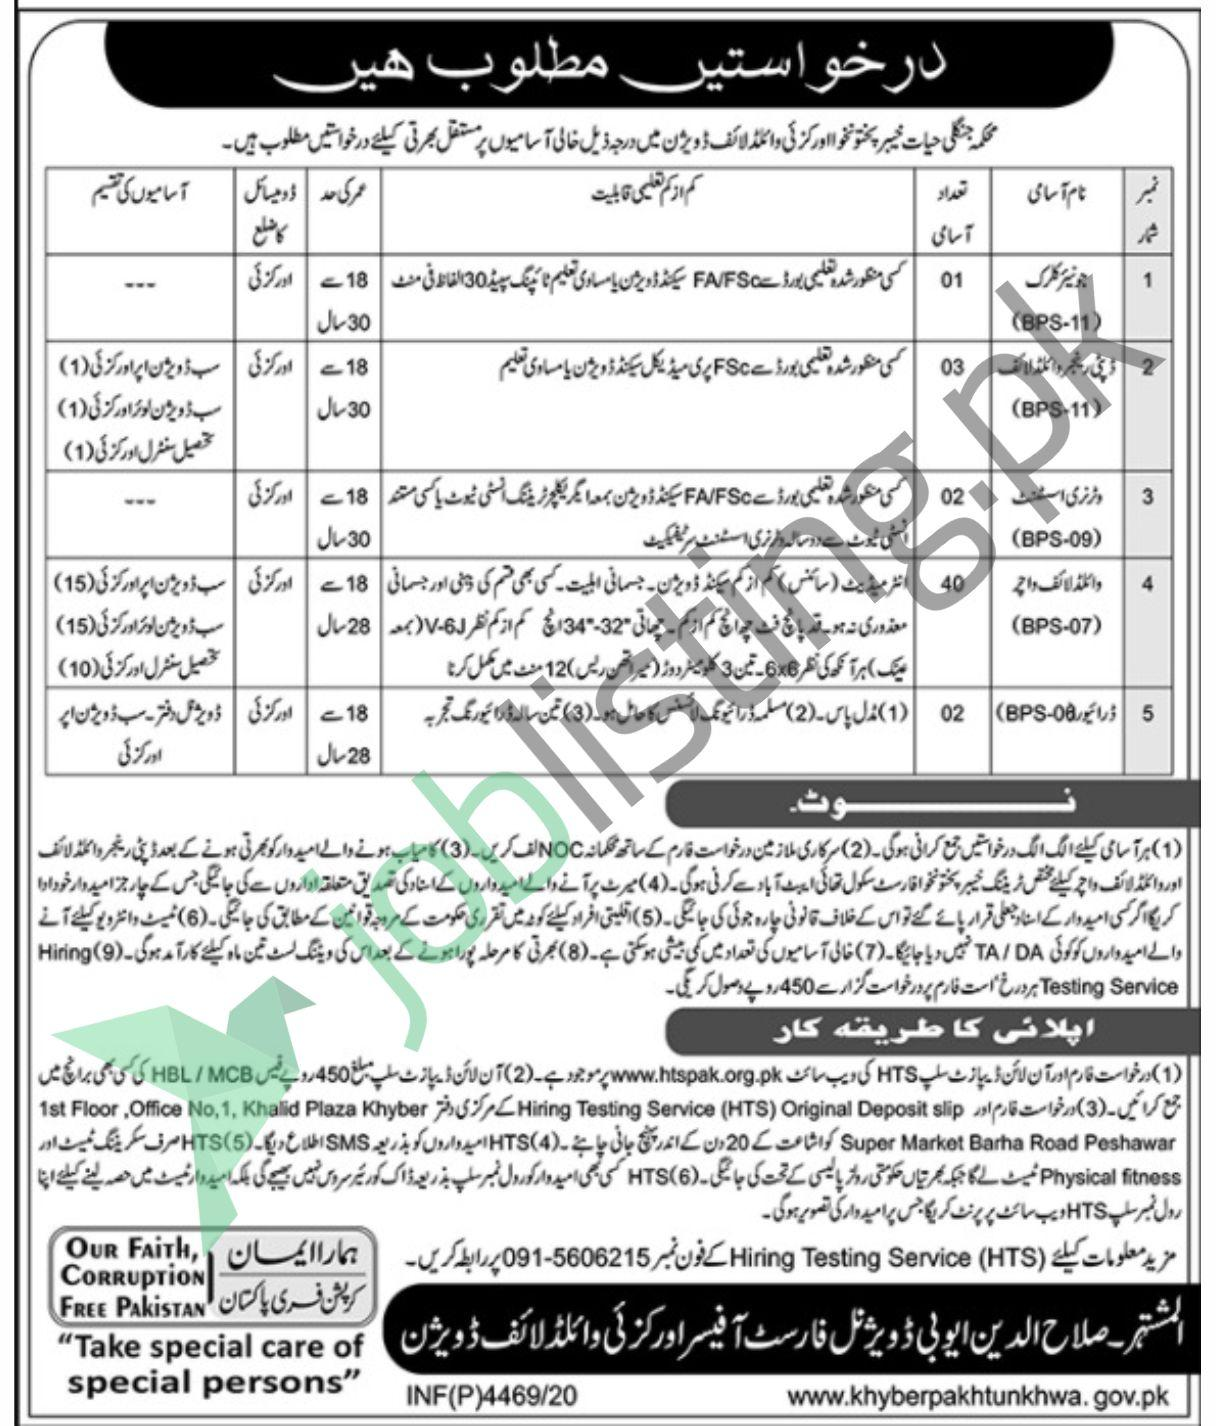 Wildlife Department KPK Jobs November 2020 | HTSPAK